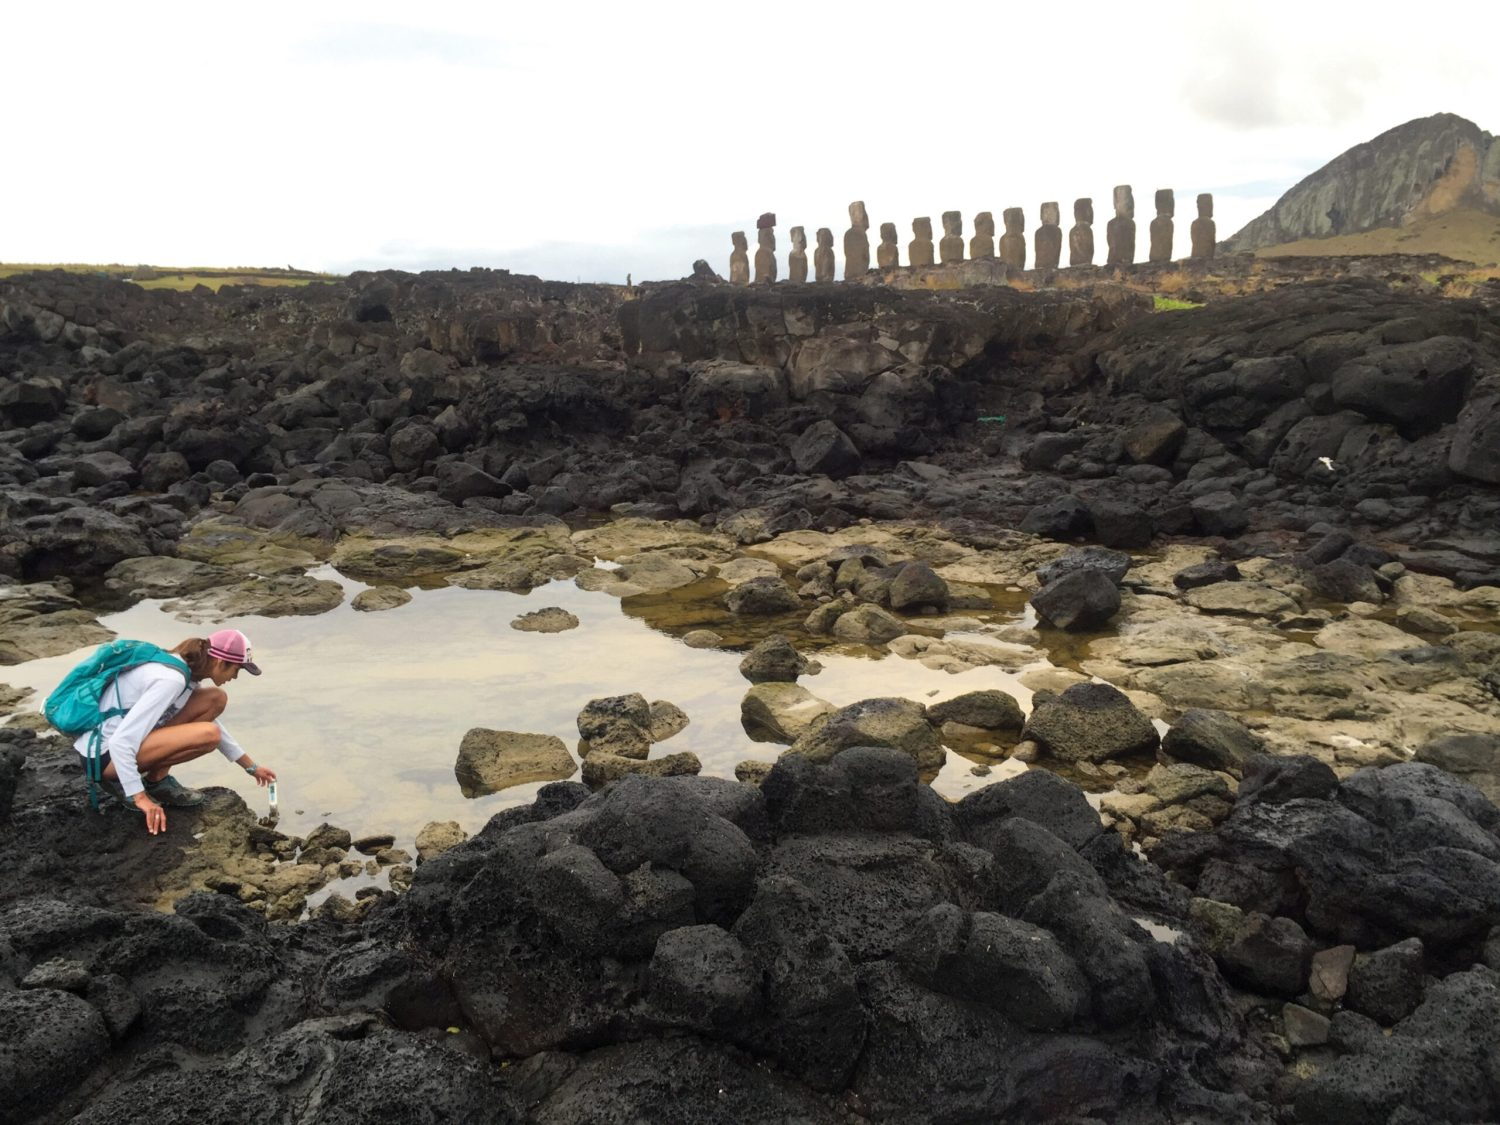 above Could the locations of Easter Island's ahu be associated with freshwater sources? A recent research project investigates the possibility of a connection. Here, Tanya Brosnan studies a coastal freshwater seep behind Ahu Tongariki.